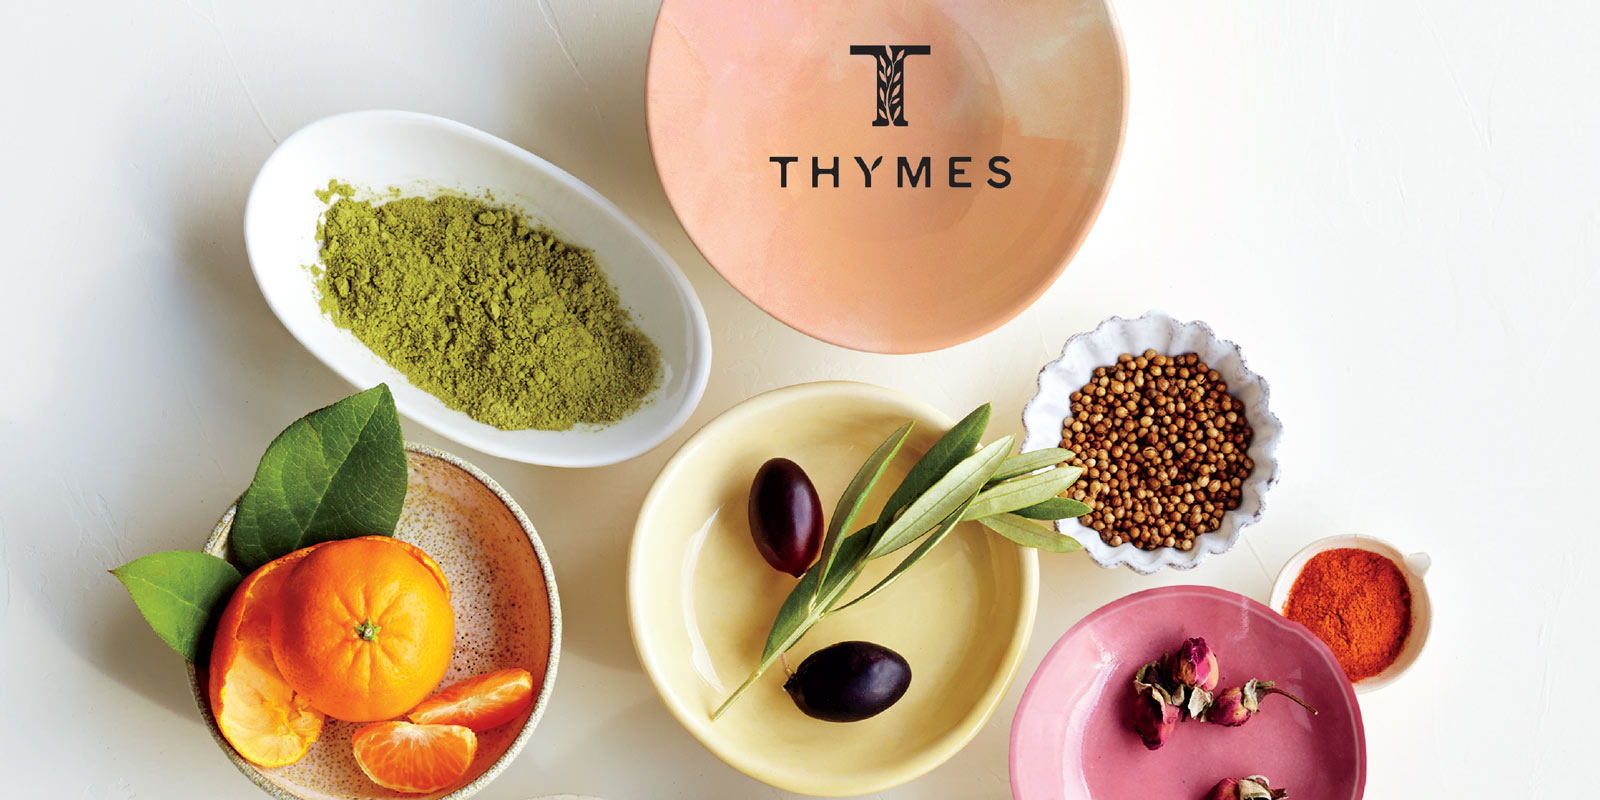 Thymes-featured-image